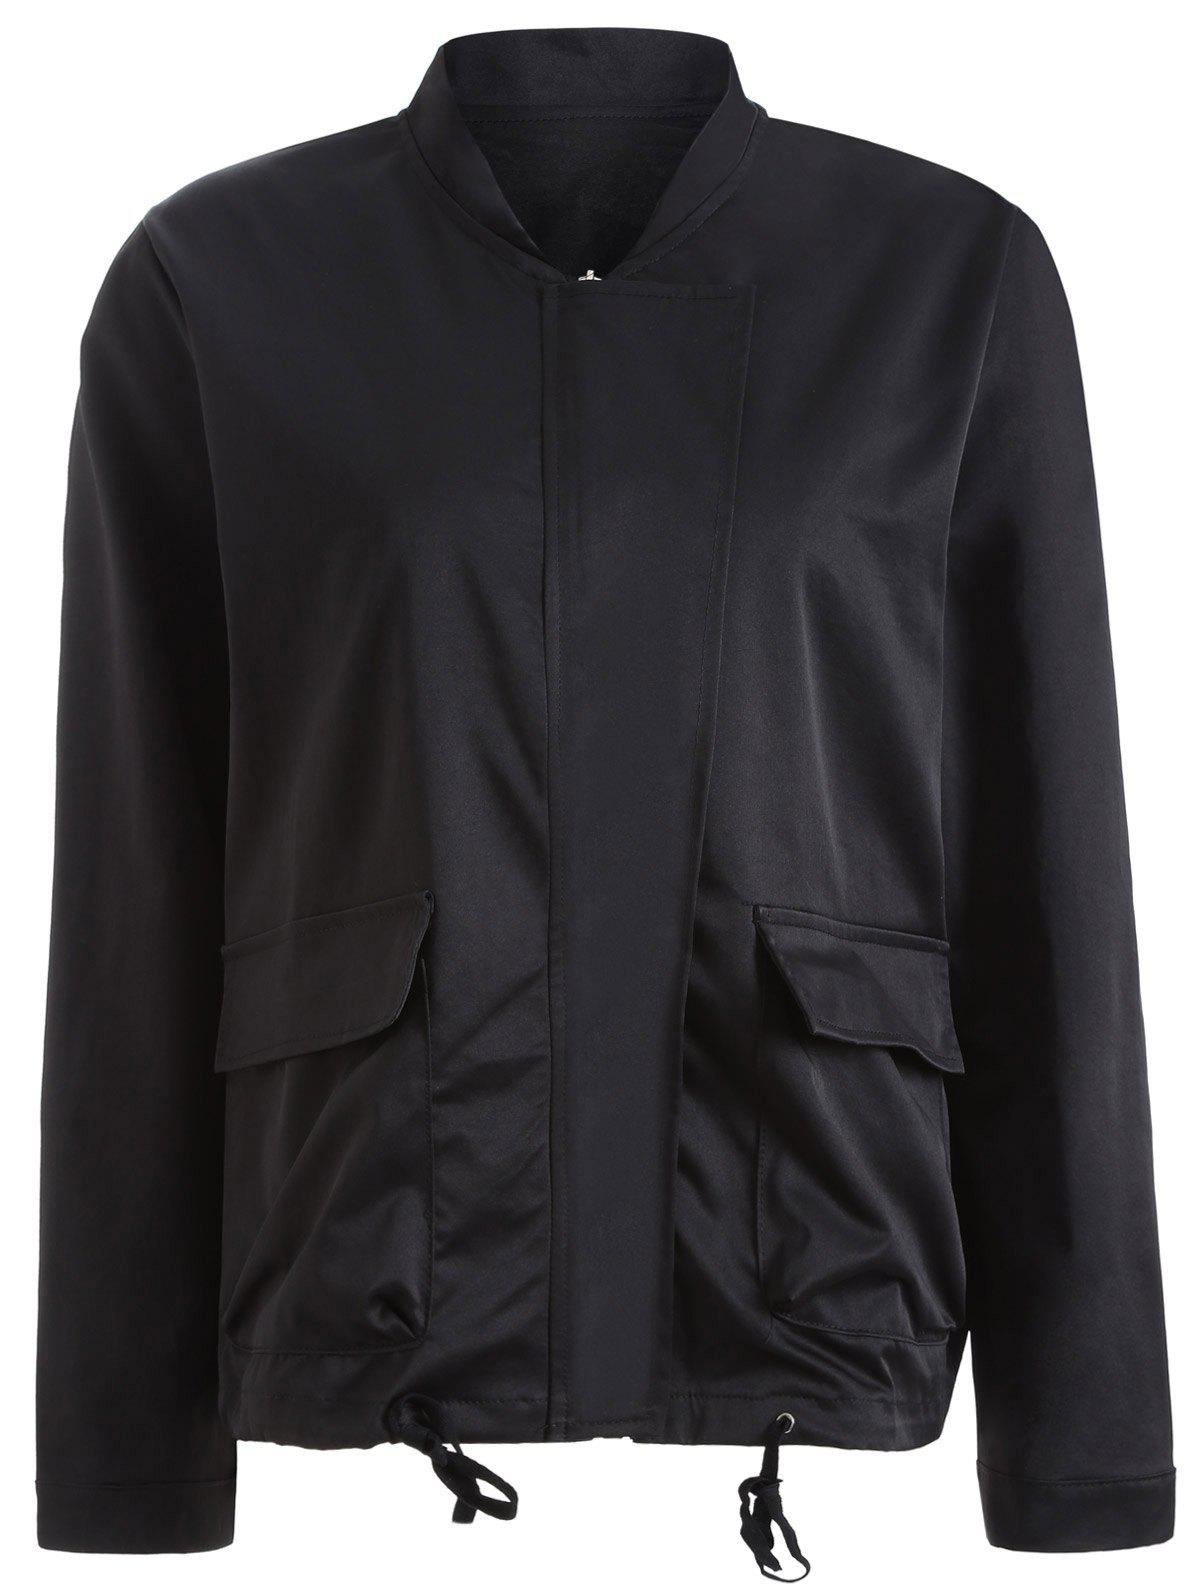 Autumn Drawstring Pockets Satin Bomber Jacket - BLACK XL